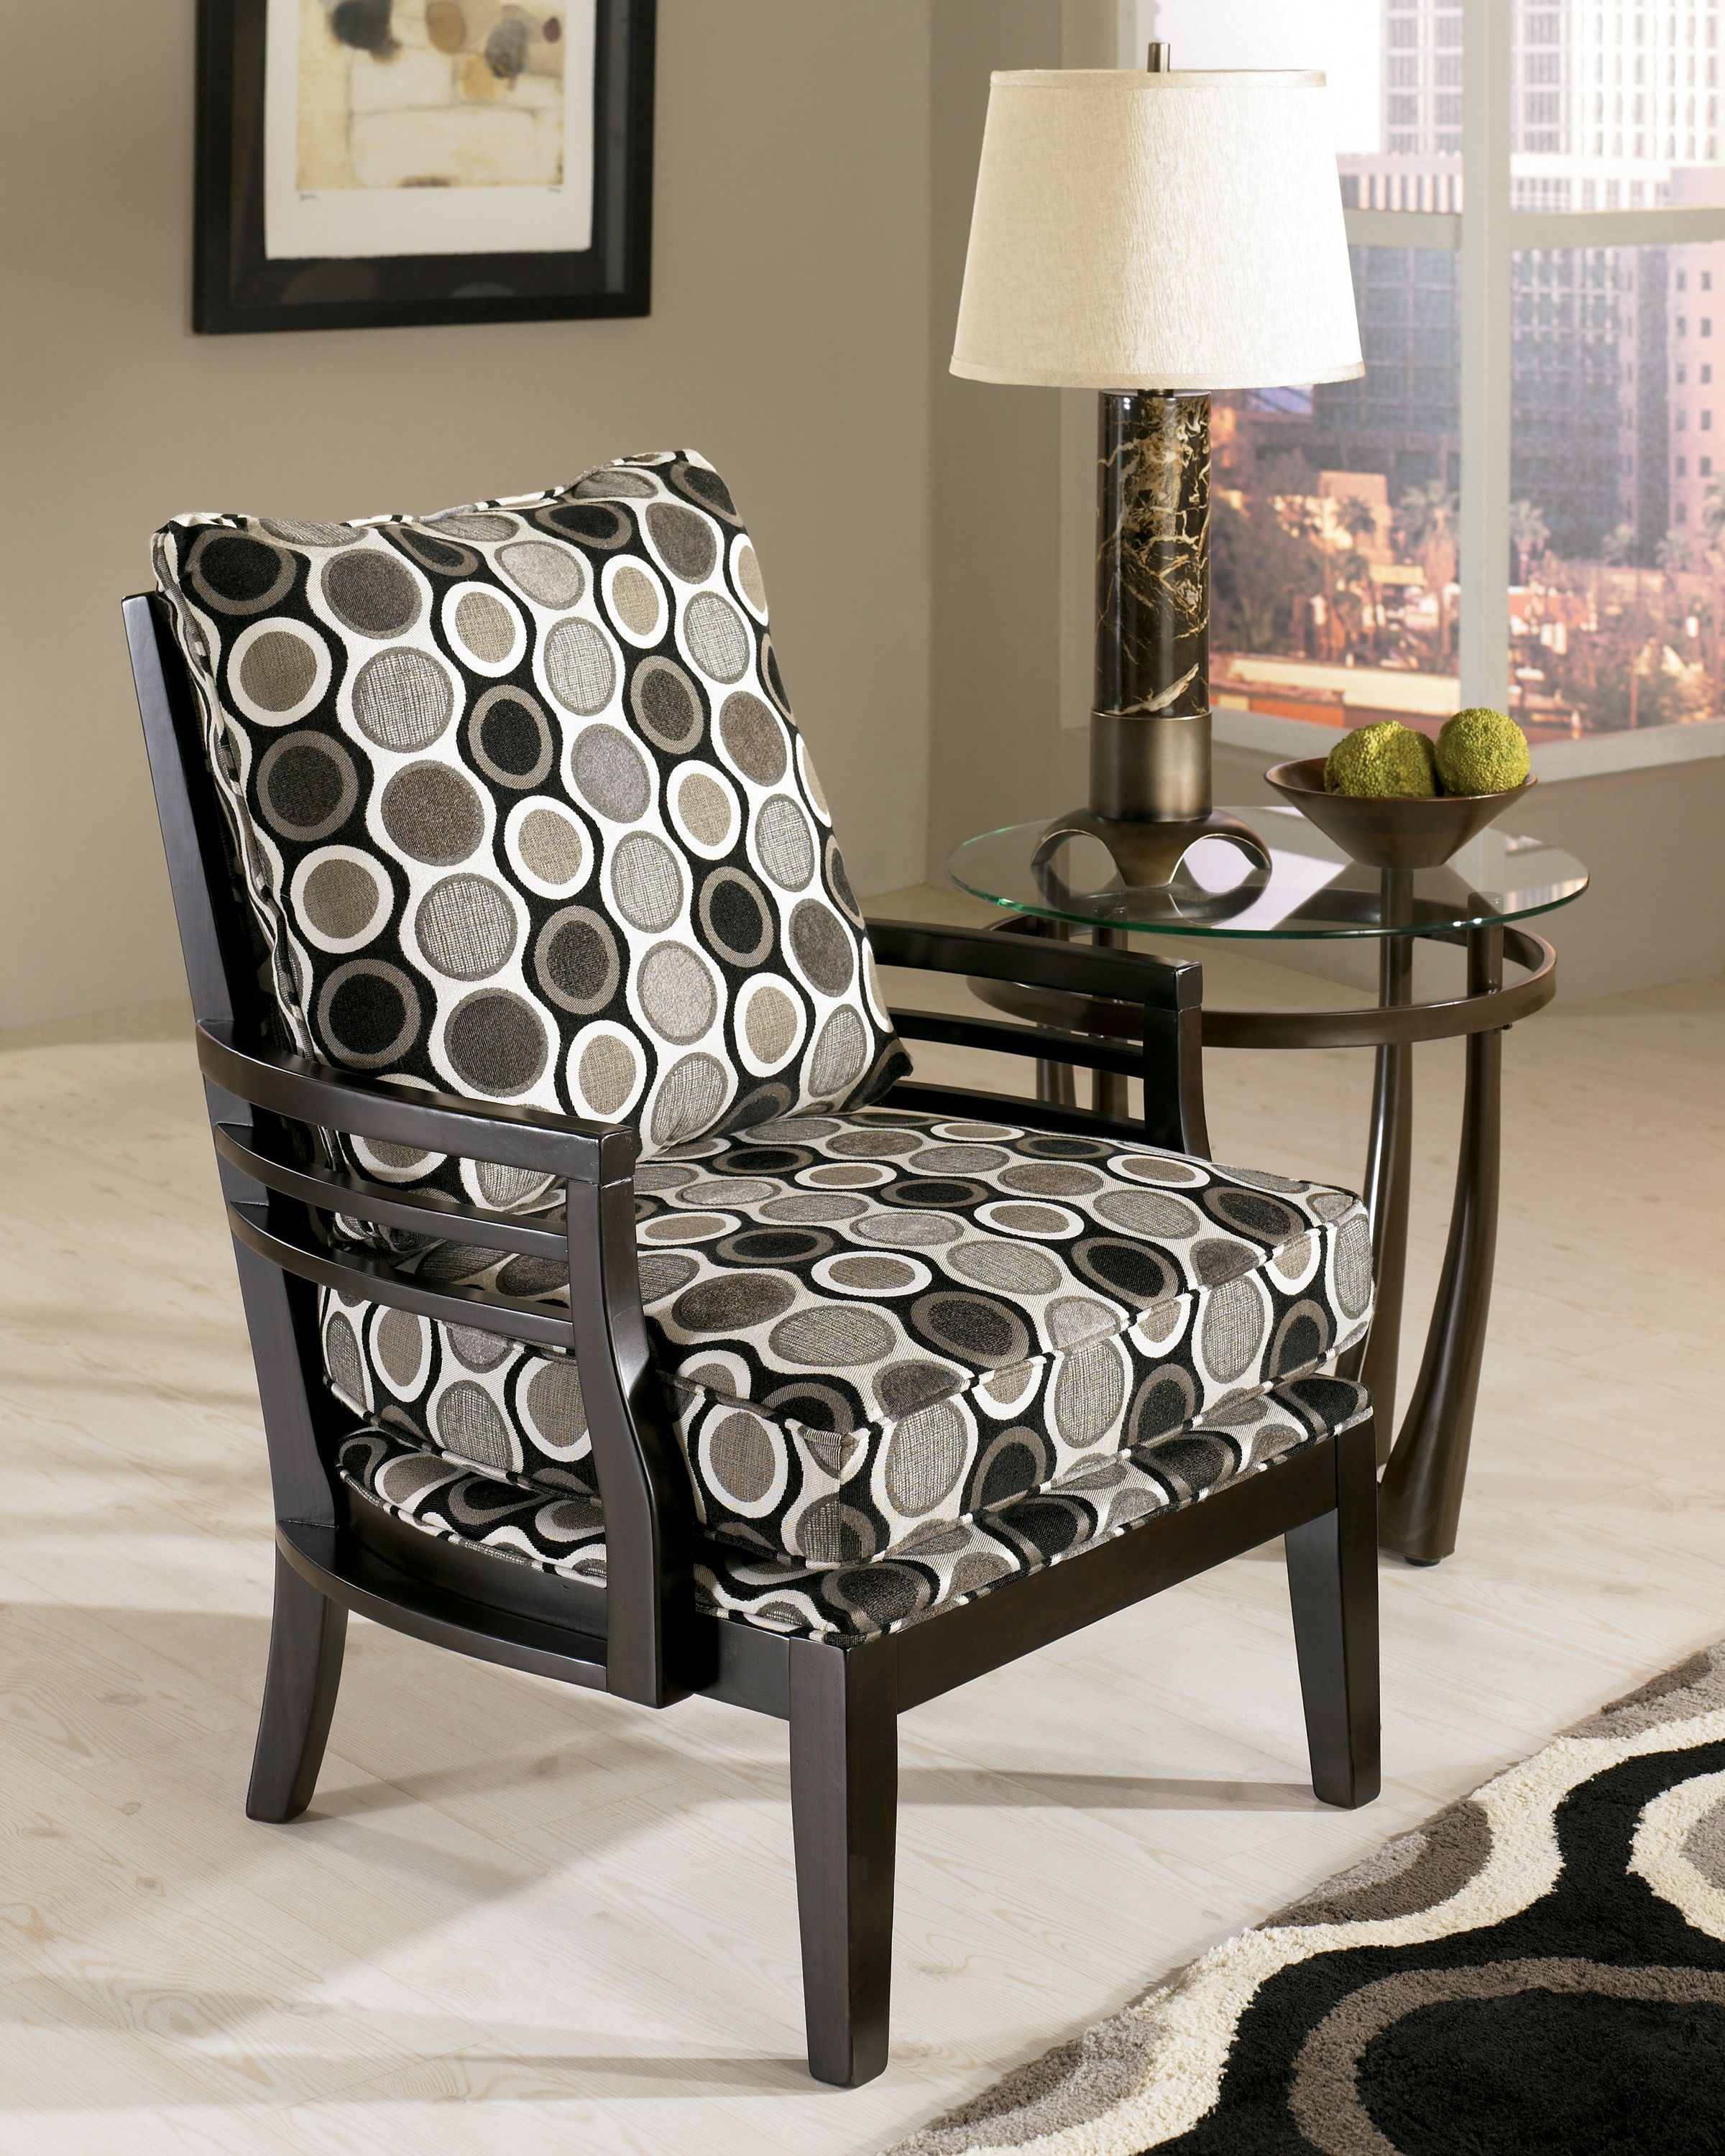 interior round grey white black home accent chair motif matched chairs with table chrome lamp glass attractive for beautiful acrylic nesting tables decorative stands living room